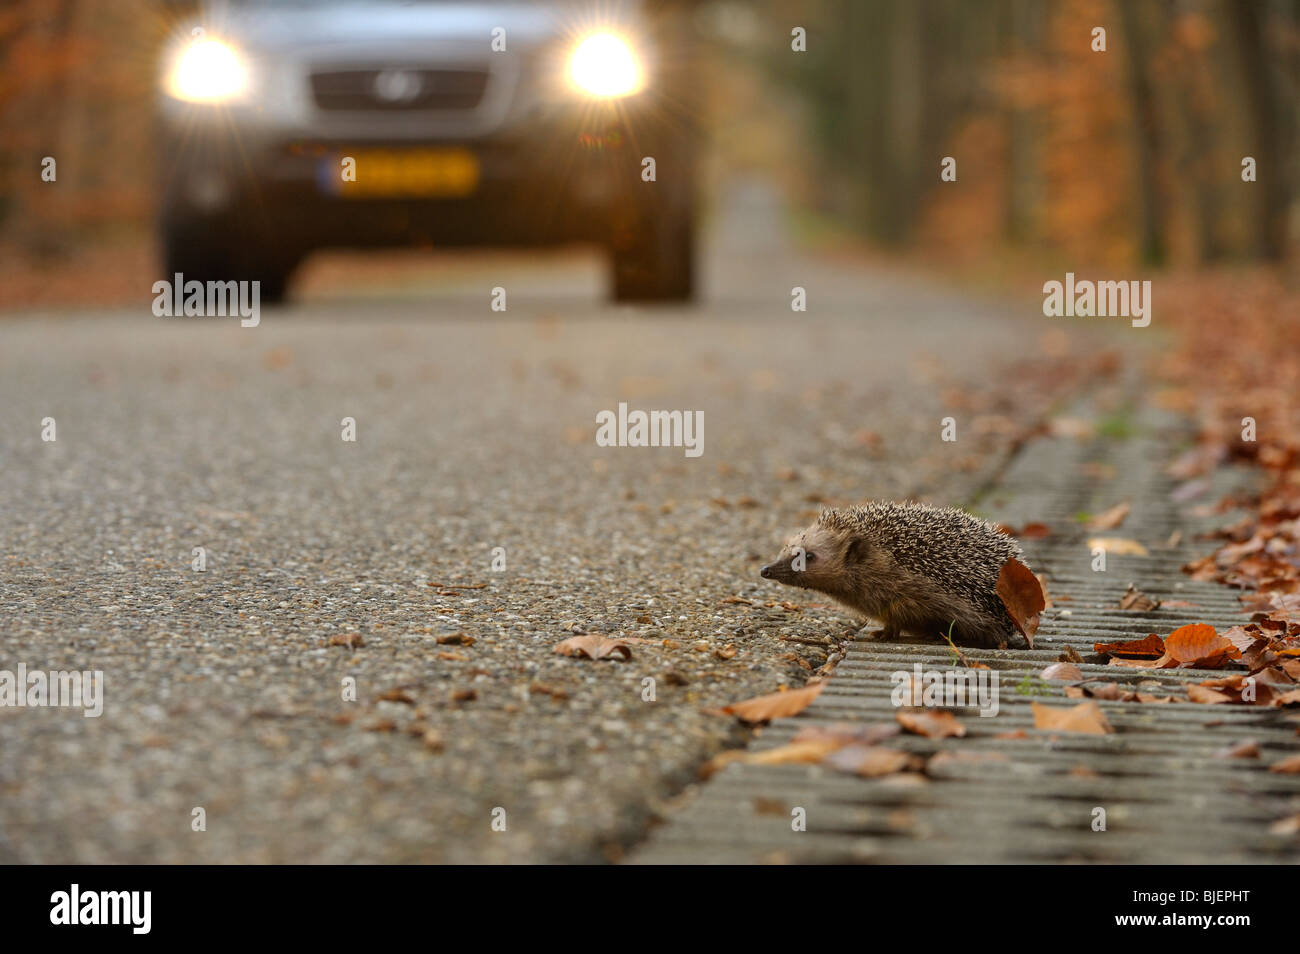 Hedgehog (Erinaceus europaeus) crossing the road with oncoming car, Netherlands. - Stock Image